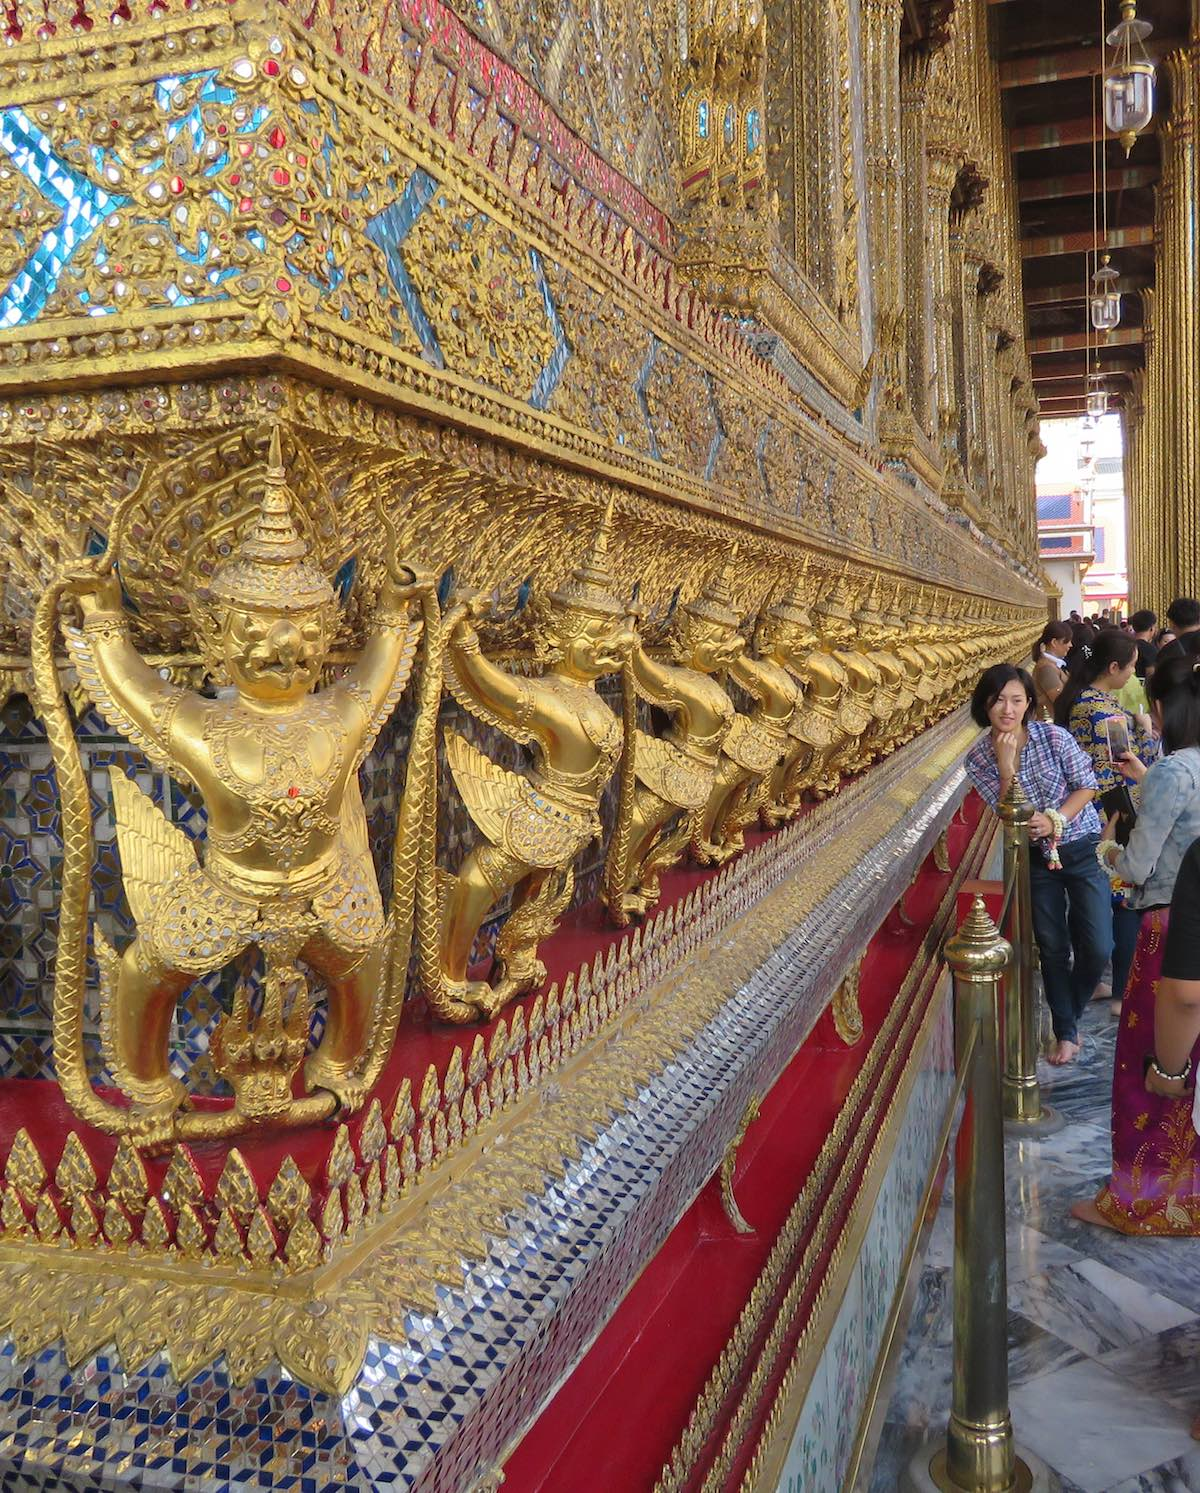 Exterior wall of the Emerald Buddha temple